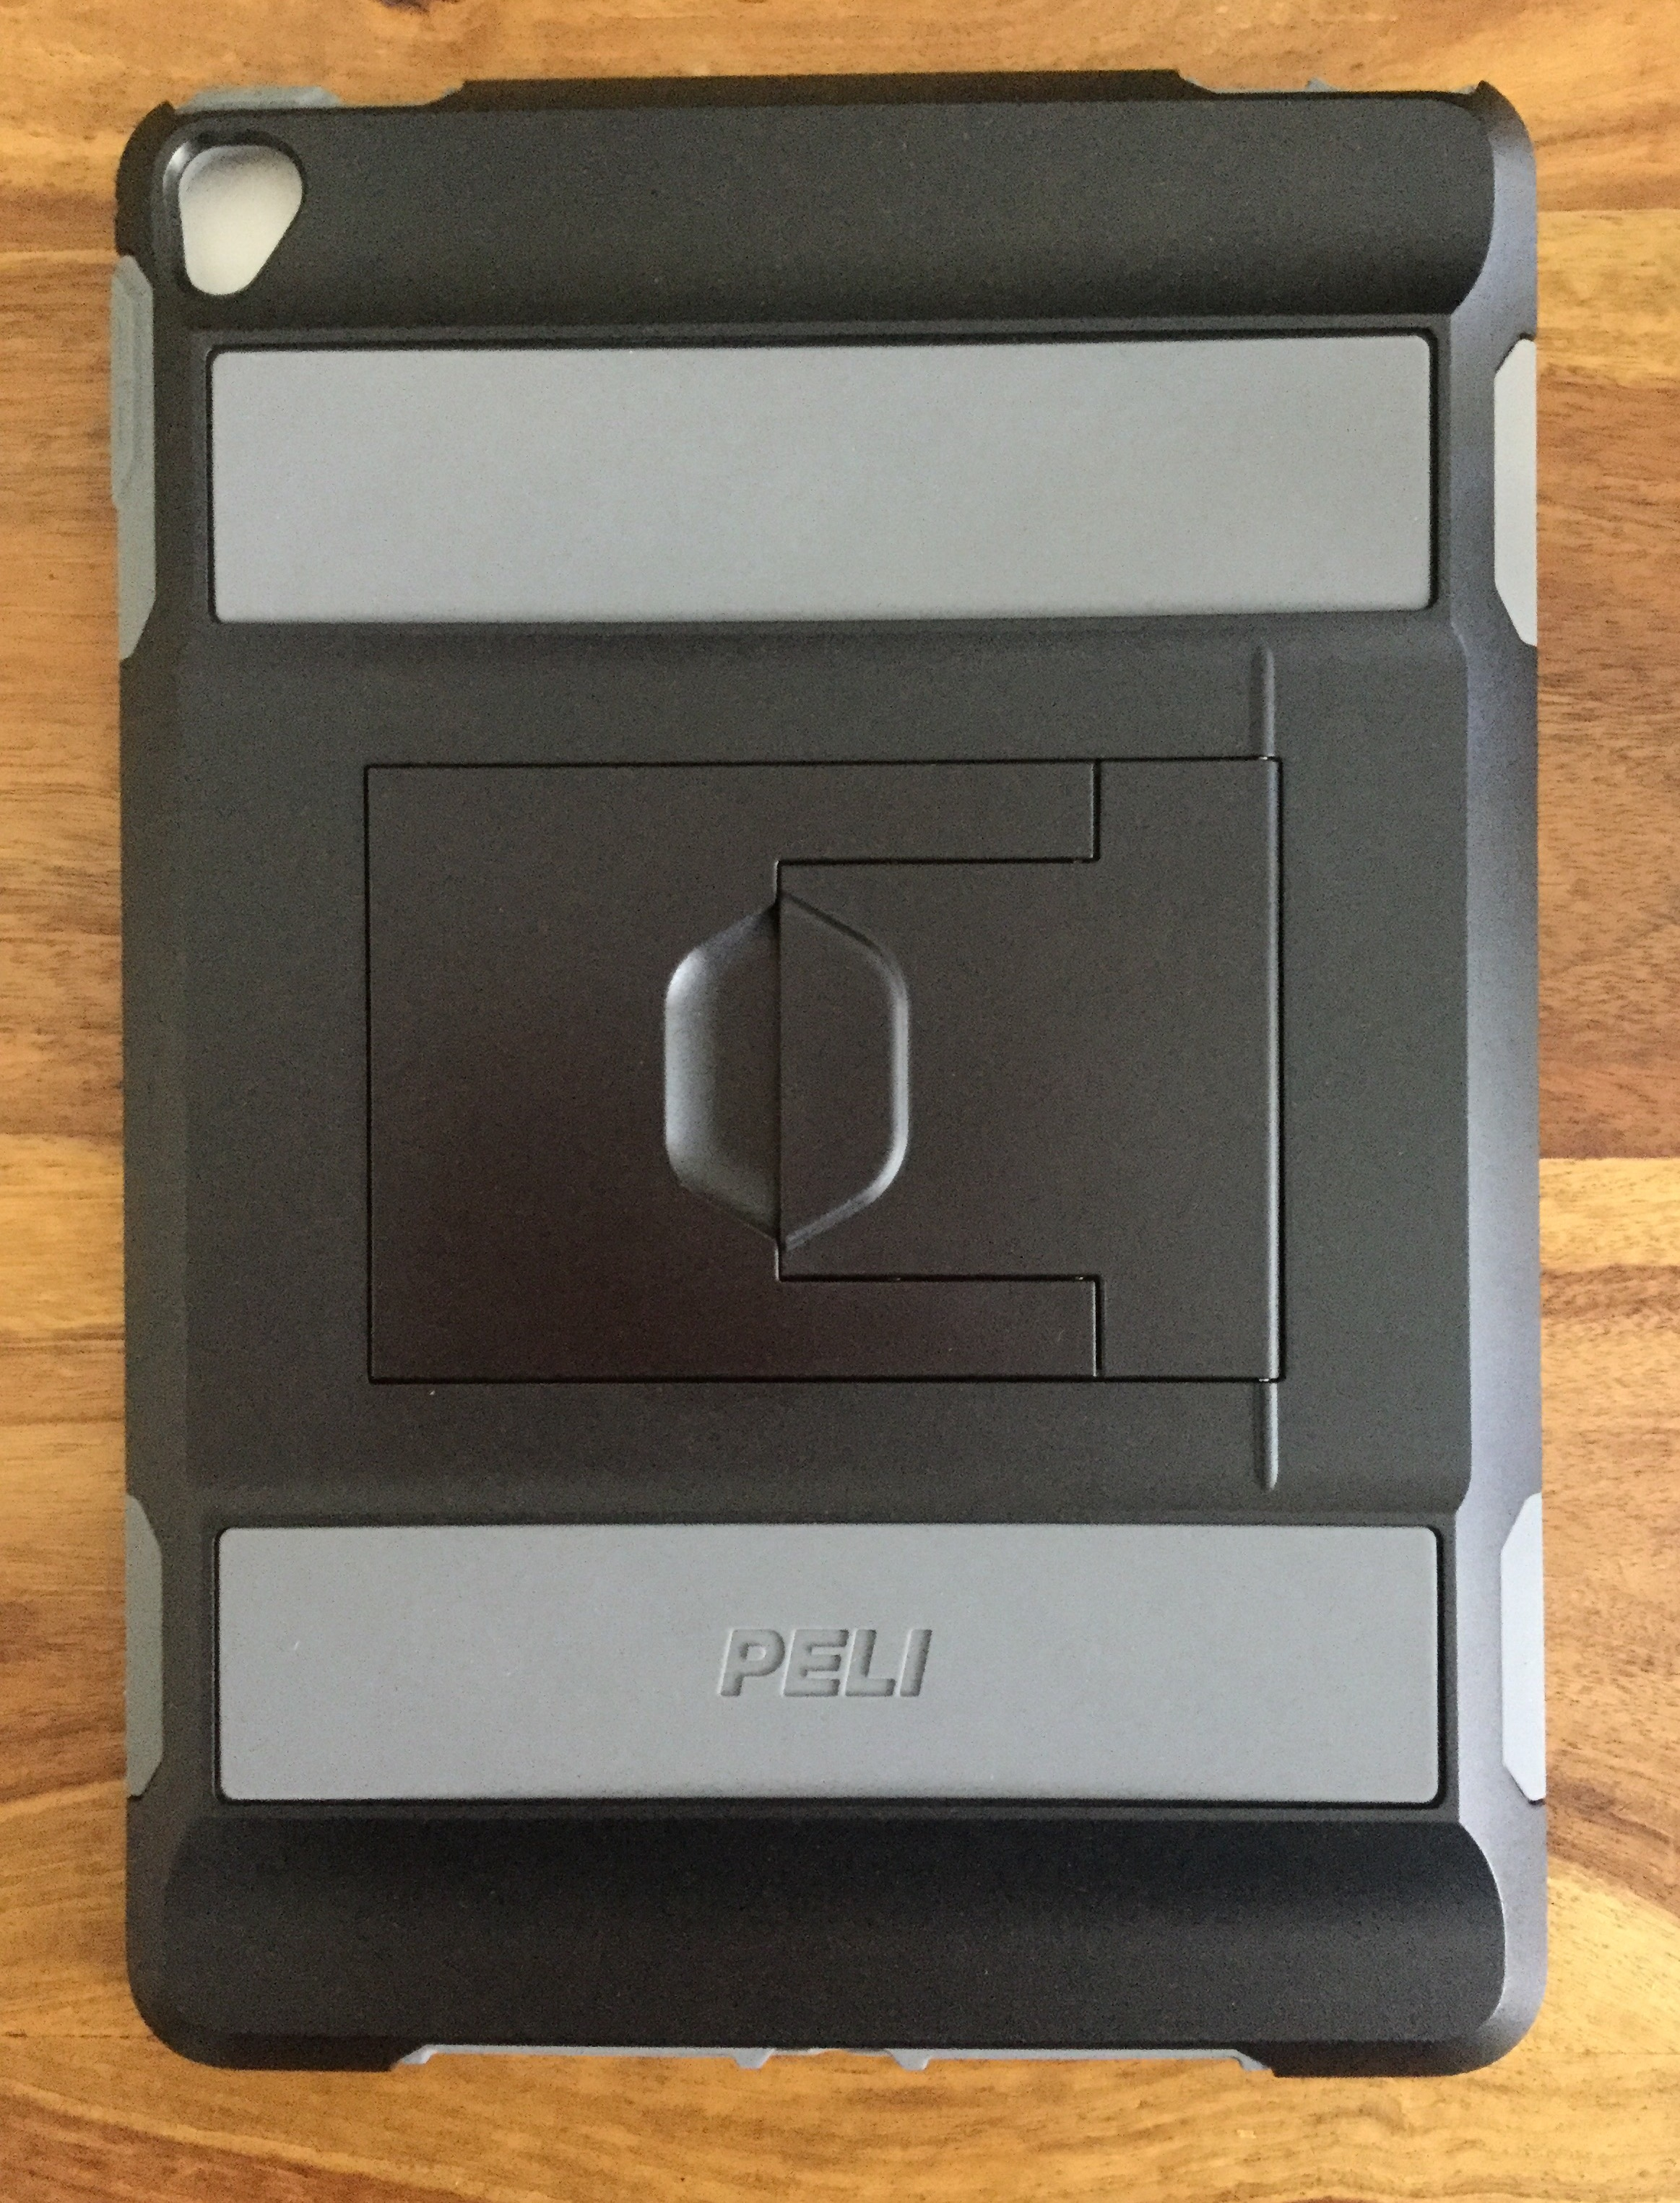 Peli Mobile Device Case Review and Giveaway - Voyager iPad Protection - Child proof and tested out by Luther of Frankie and the Lamb